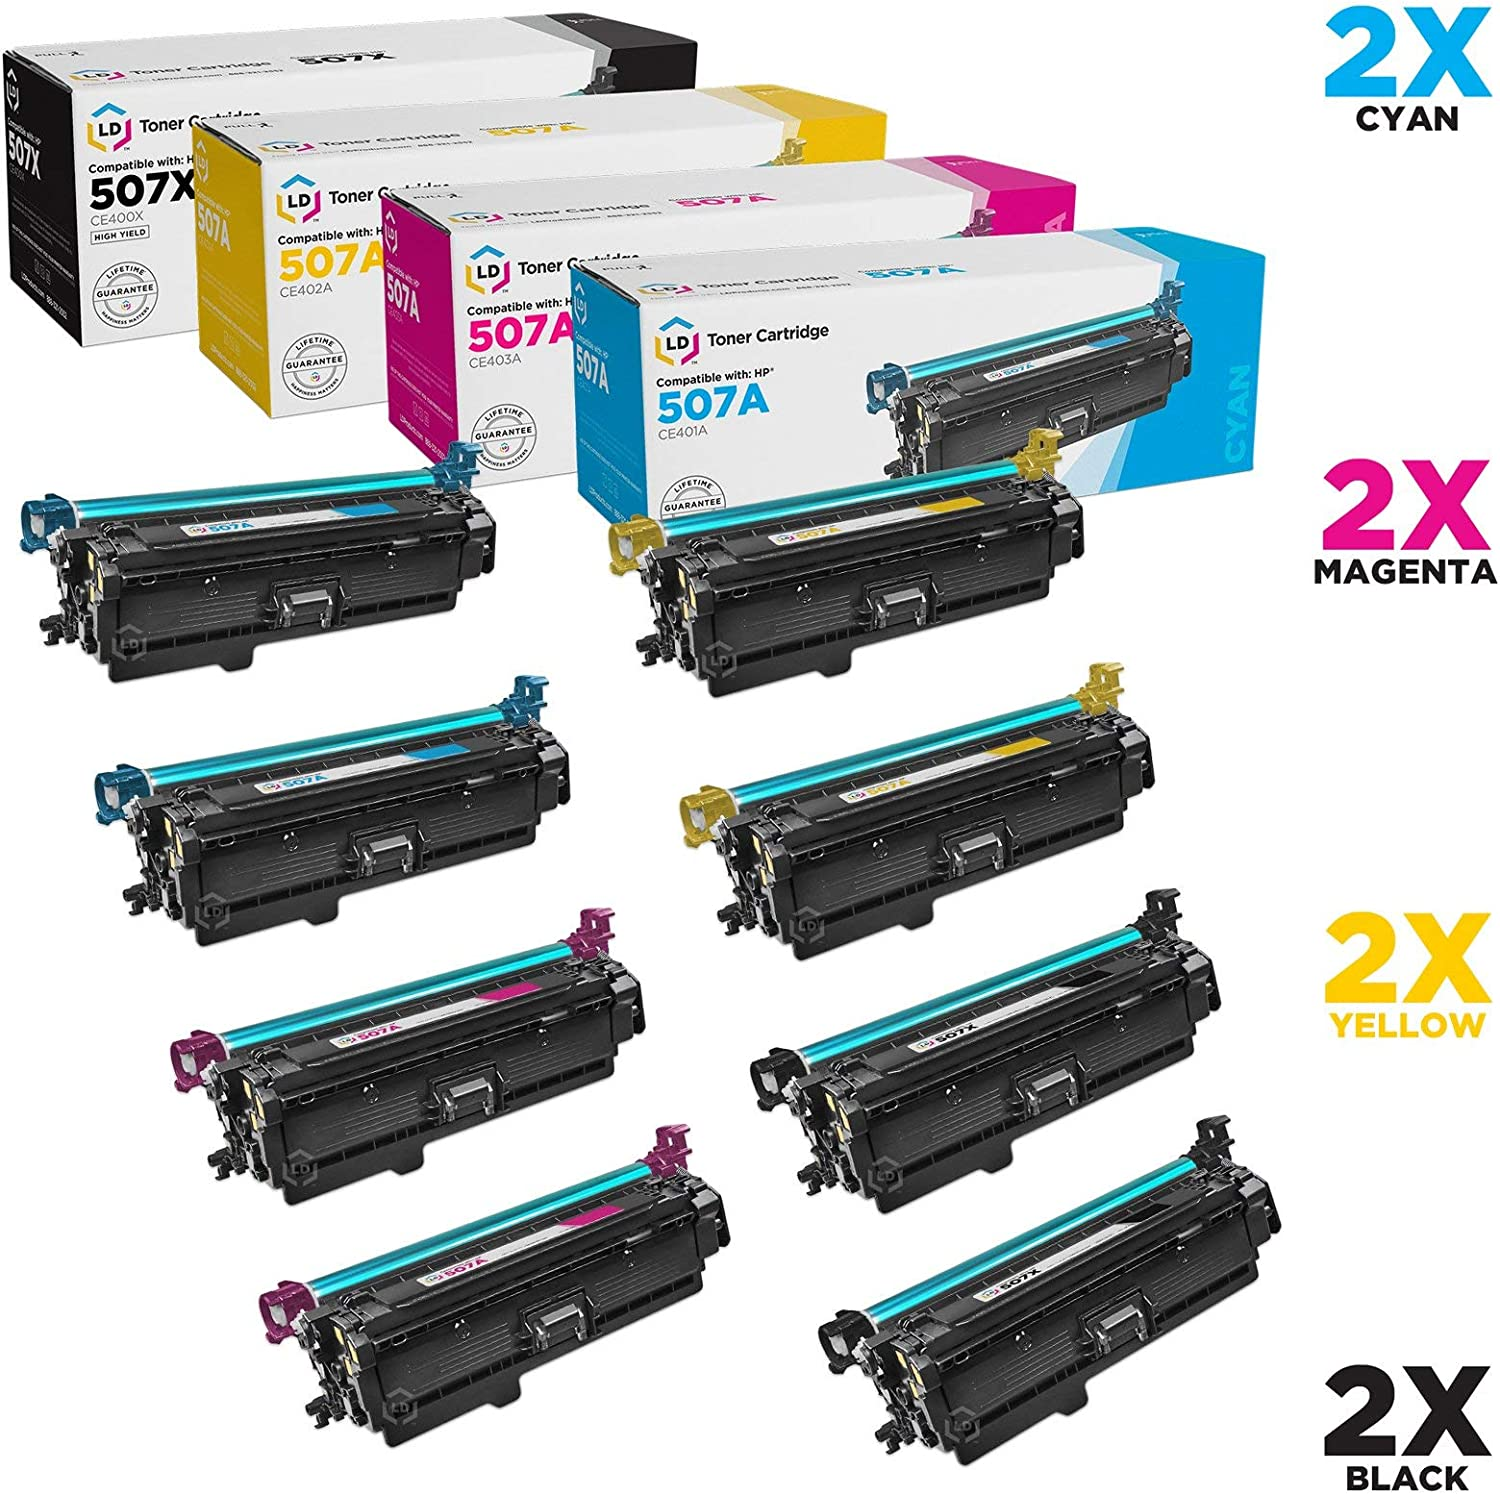 LD Remanufactured Toner Cartridge Replacements for HP 507A & HP 507X High Yield (2 Black, 2 Cyan, 2 Magenta, 2 Yellow, 8-Pack)